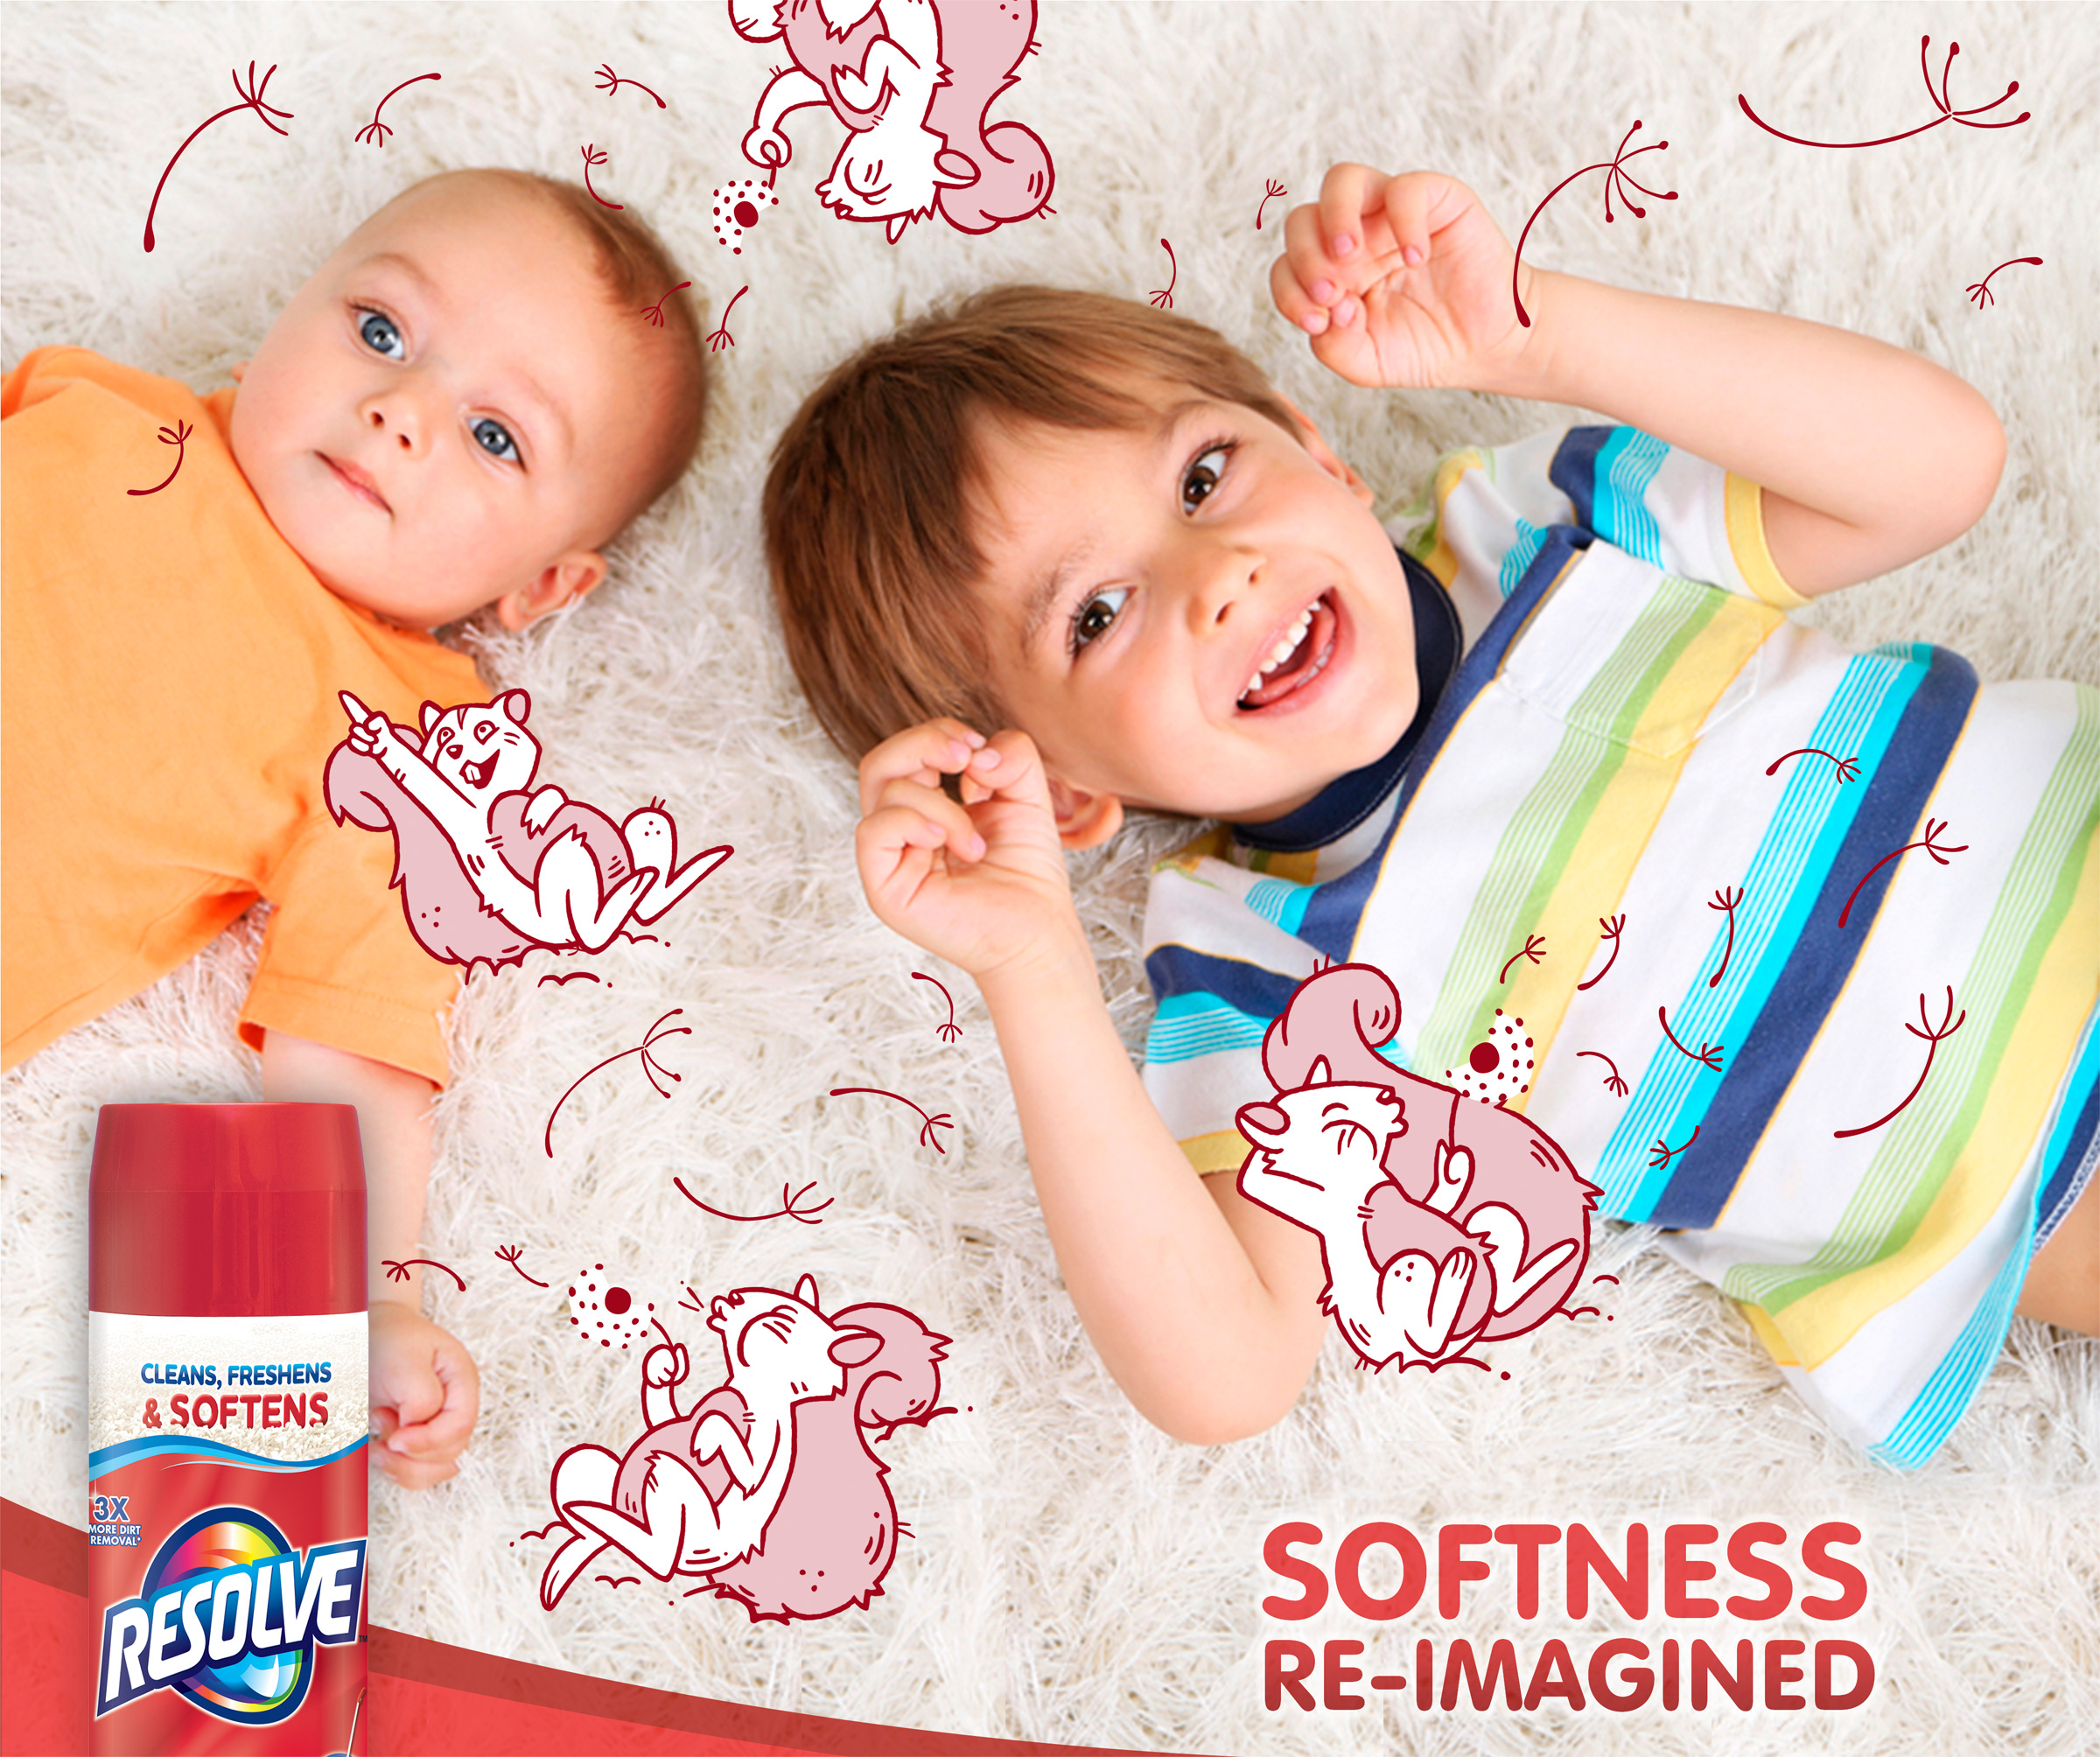 Your kids might think bushy-tailed squirrels blowing dandelions soften the carpet. But you know it's Resolve. The new formula cleans, freshens, and now SOFTENS your carpet.